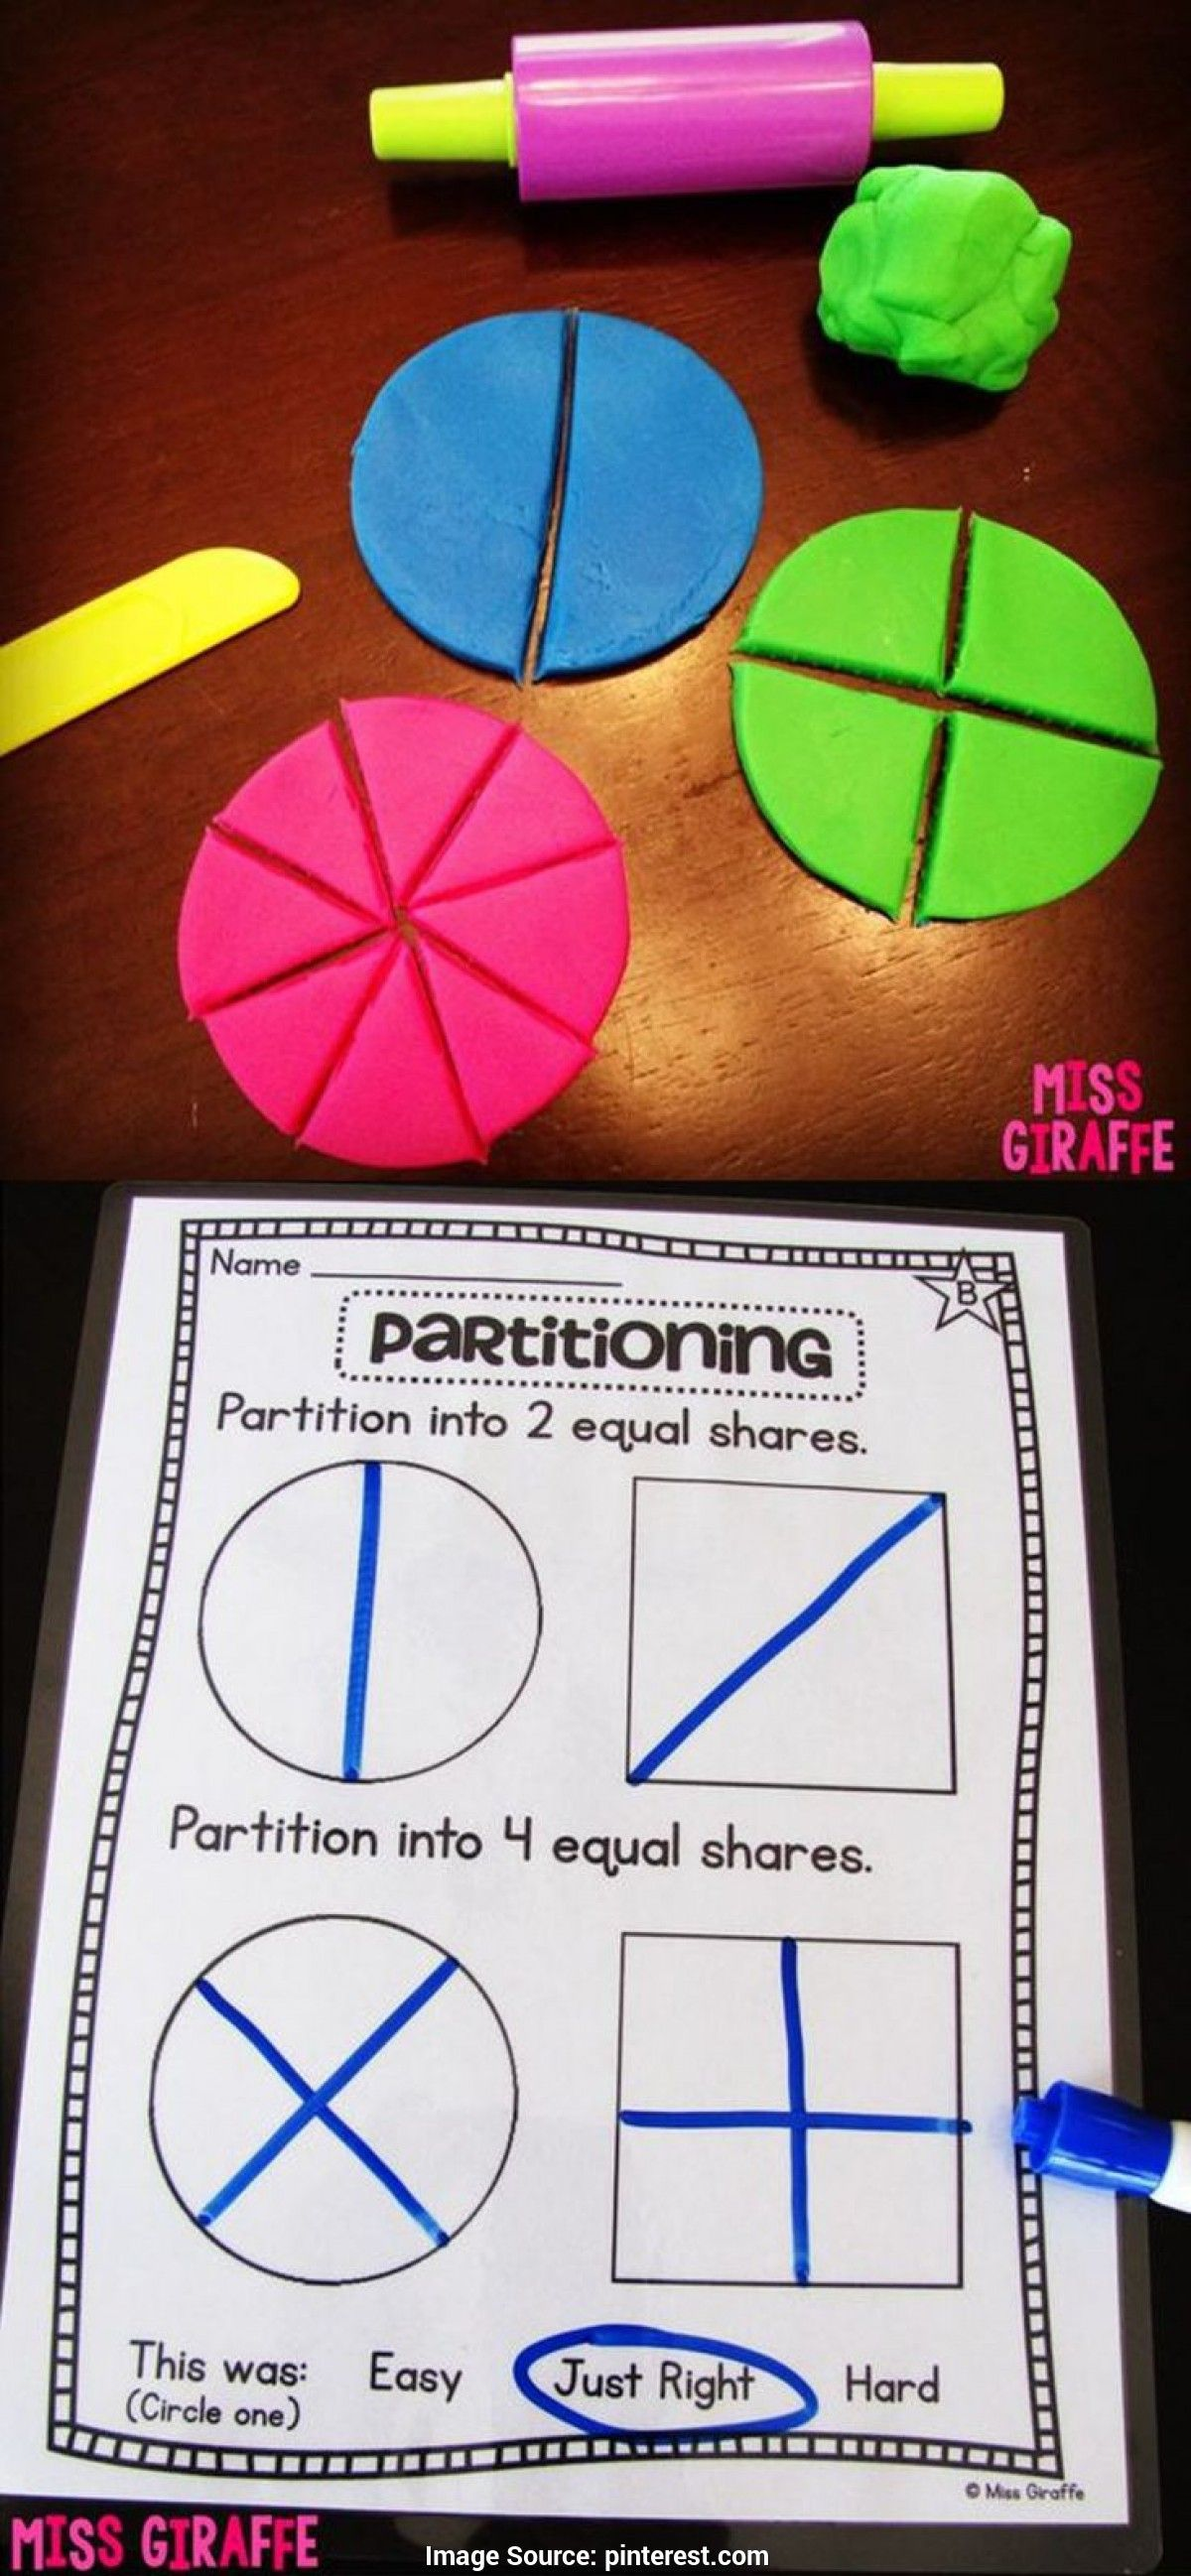 Pin 3 This Activity Is A Good Way To Teach Geometry Hands On In A New Way It Allows The